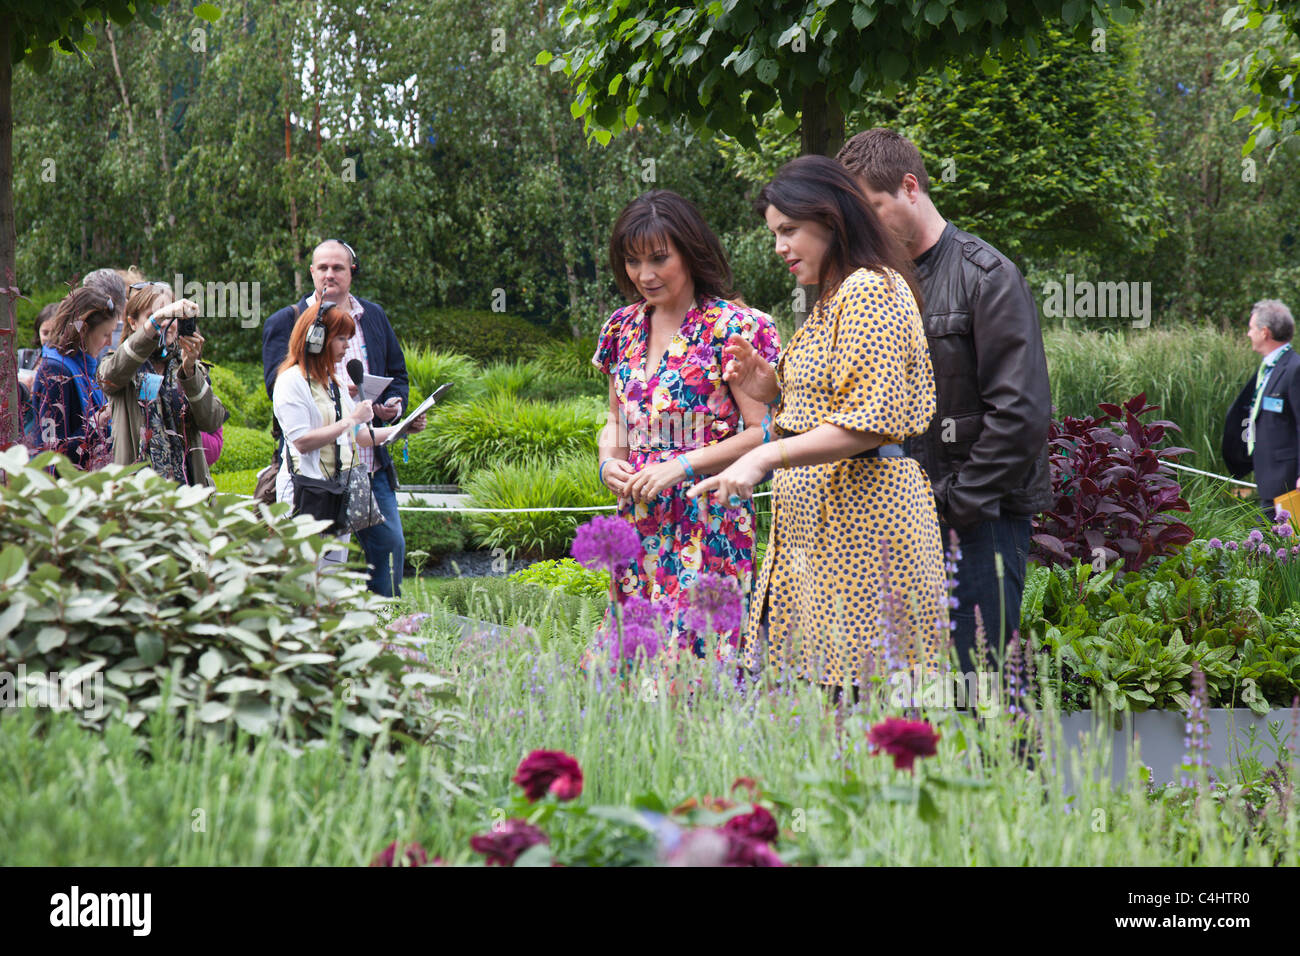 Celebrity TV Presenters Lorraine Kelly and Kirstie Allsopp, and Press crew in background, at the RHS Chelsea Flower - Stock Image